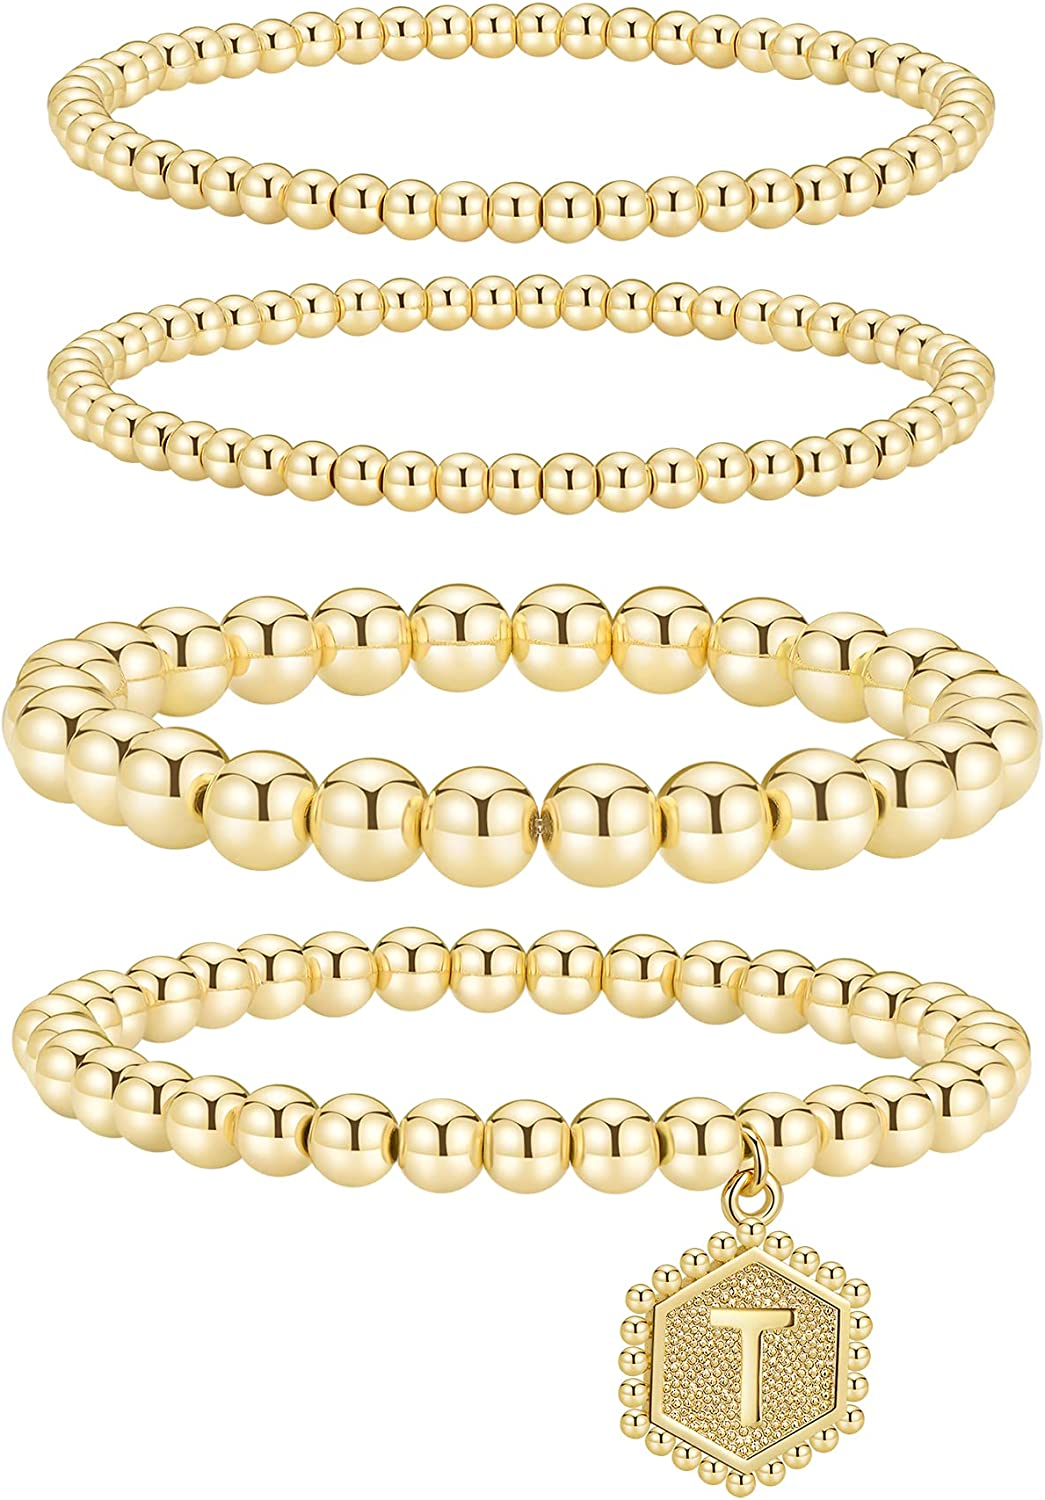 Jollone Gold Beaded Bracelets for Women Set stackable Bead Bracelet 14K Gold Plated Layered Stretch Bracelets for Women Men Gift with Initial Hexagon Pendant